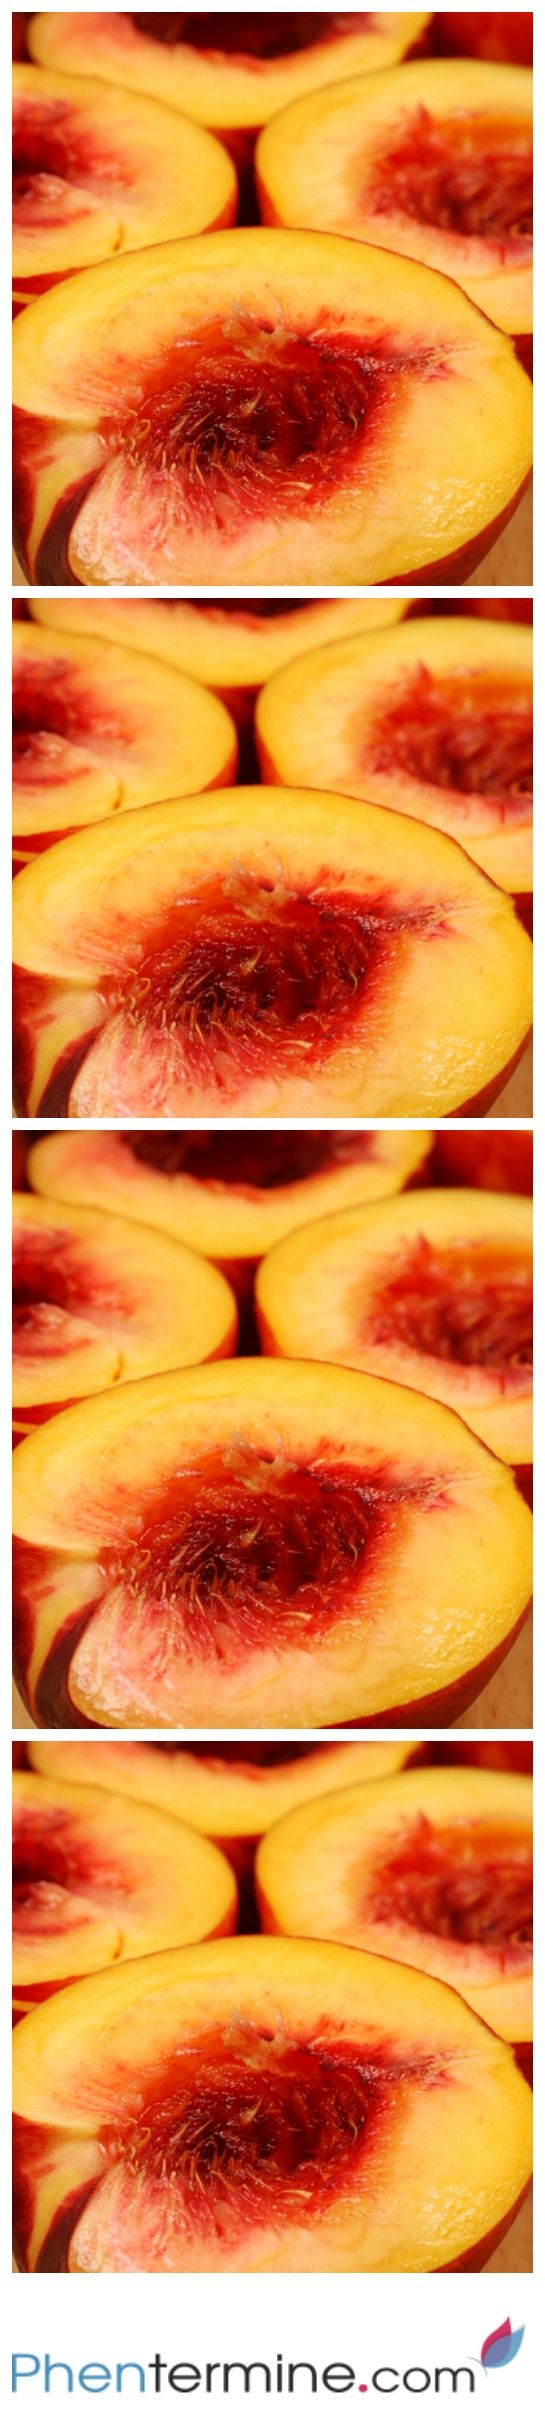 Nectarines are high in antioxidants and low in calories, making them great for health and weight loss – but remember to eat the skin for more fiber. #weightloss #health #loseweigth #fit #fitness #happy #healthy #sugar #recipe #breakfast #motivation #funny #phentermine #strong #workout #healthy #diet